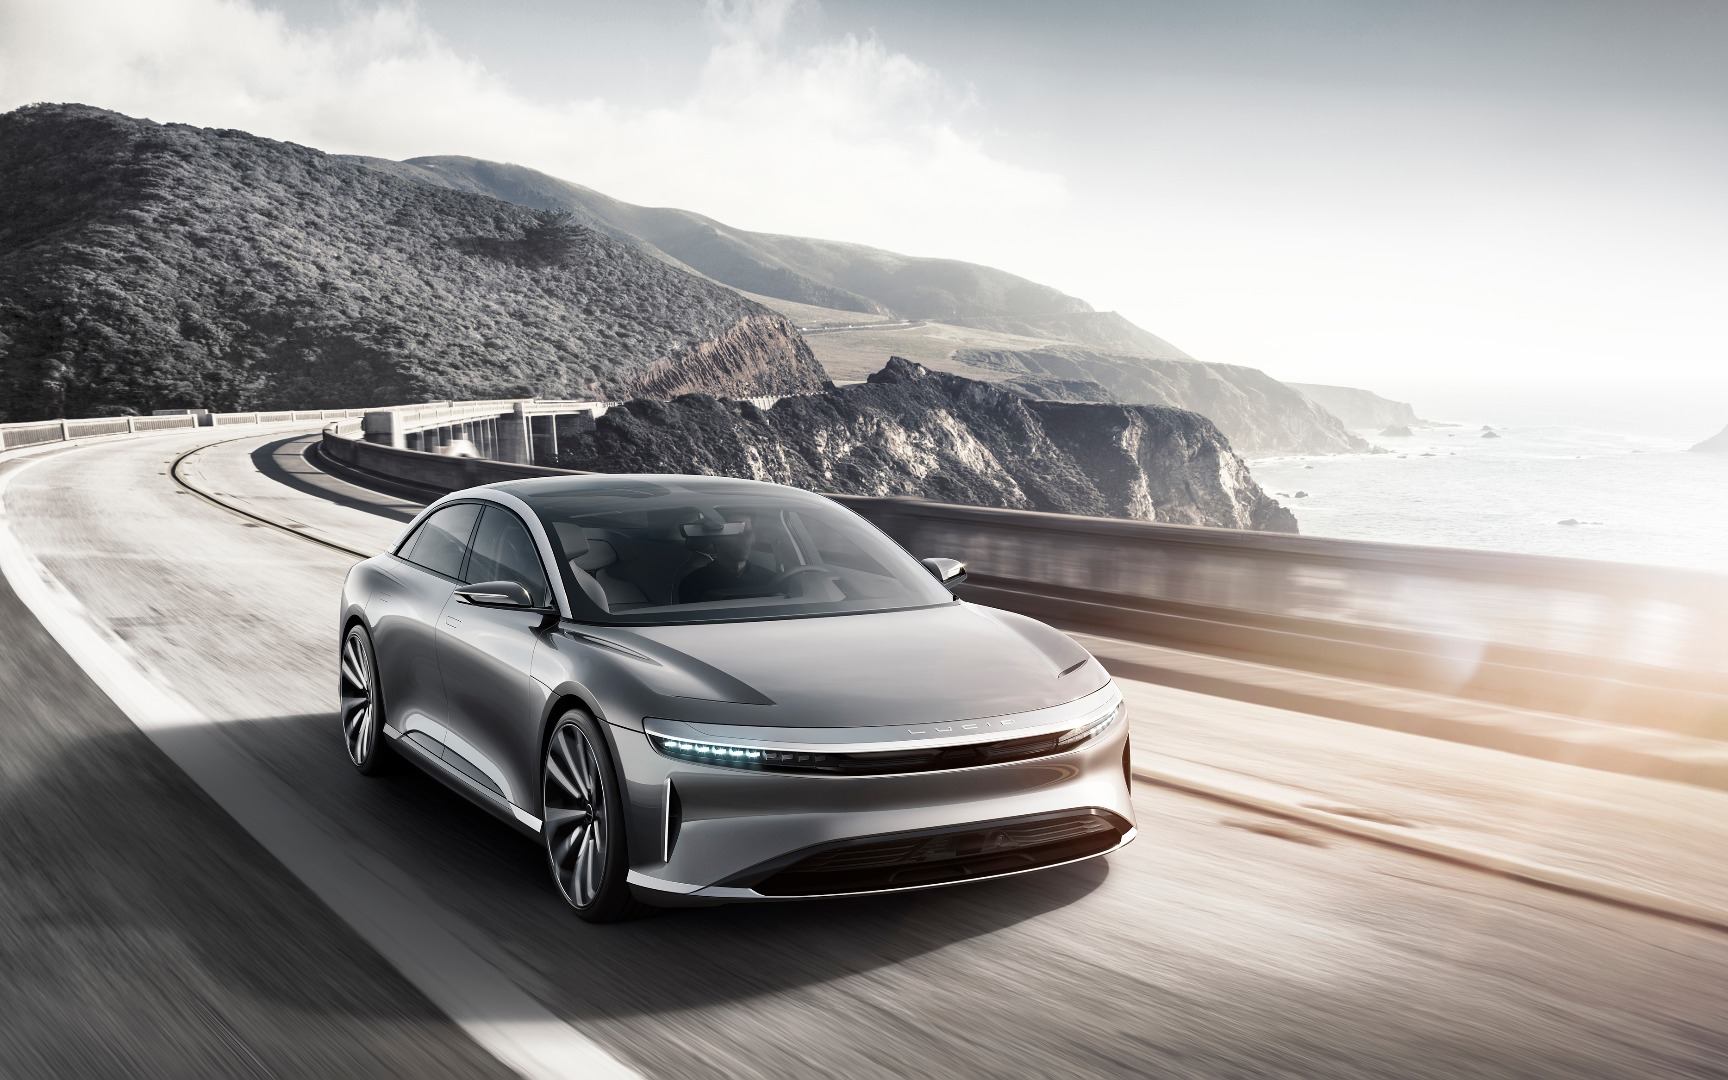 Lucid finally offers first look at upcoming electric sedan